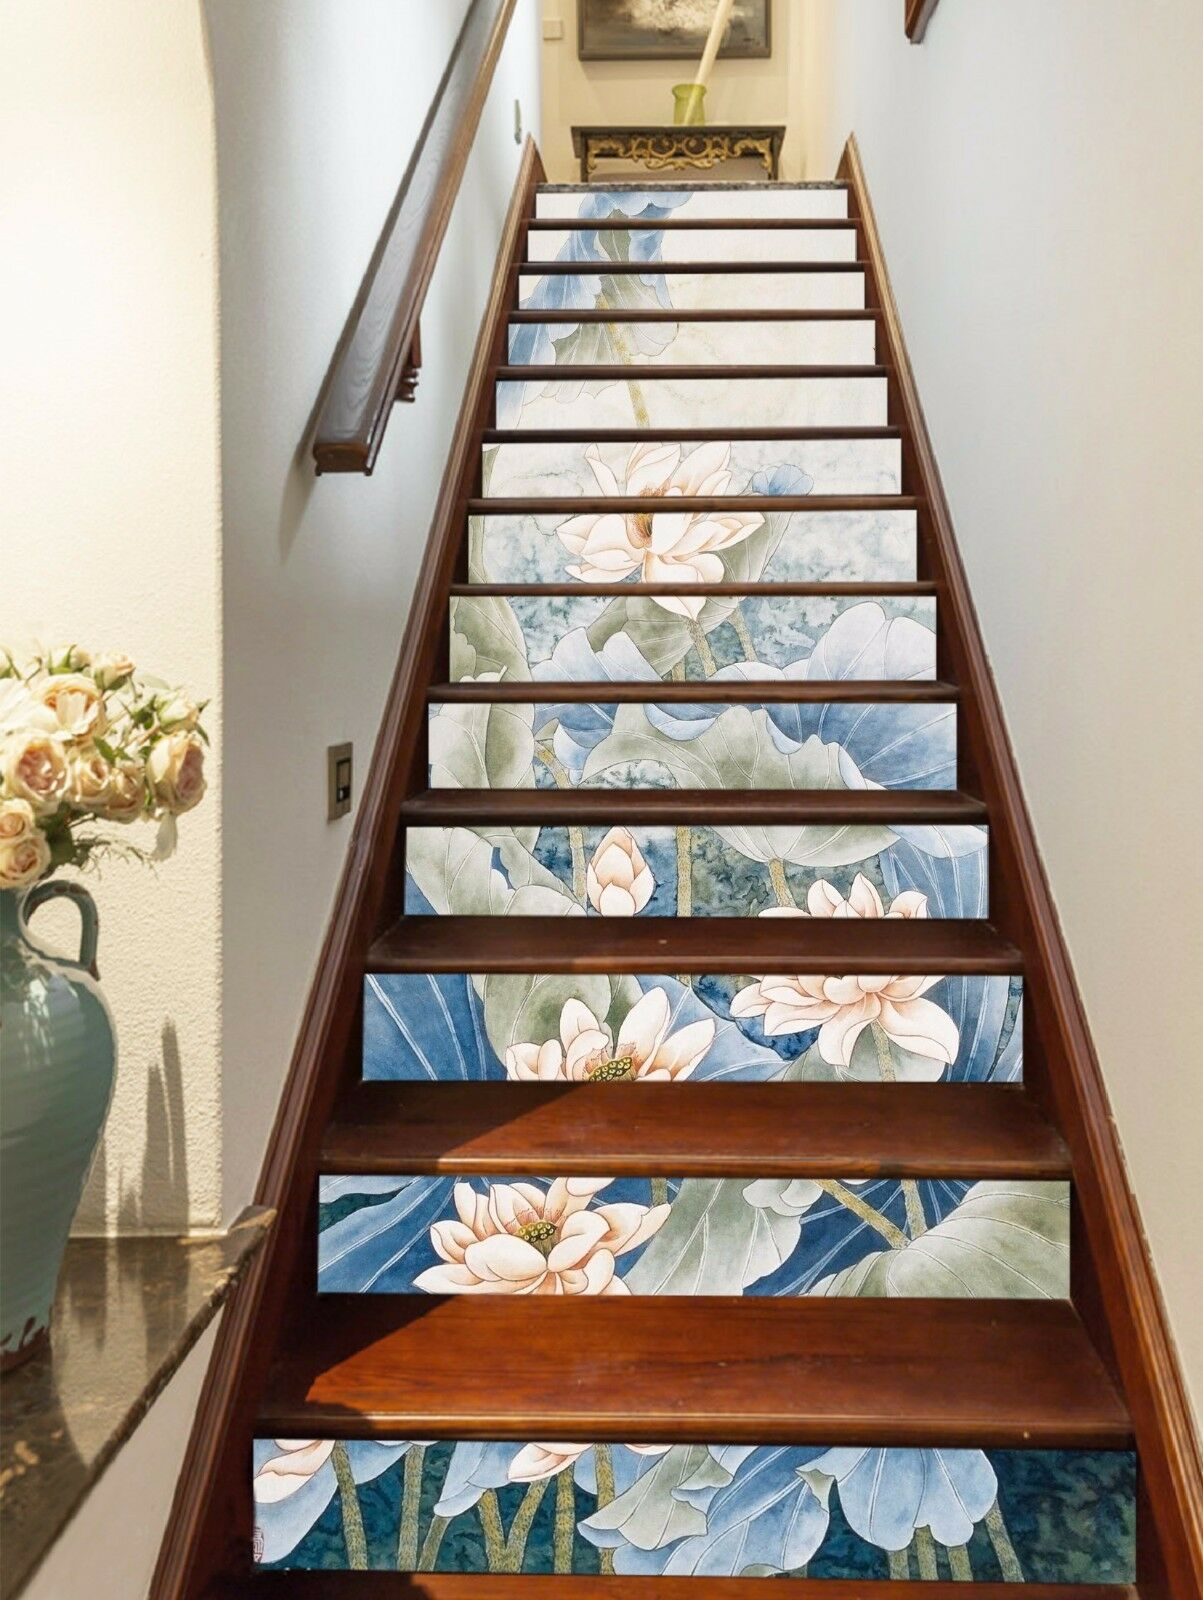 3D Lotus Flowers 11 Stair Risers Decoration Photo Mural Vinyl Decal Wallpaper AU